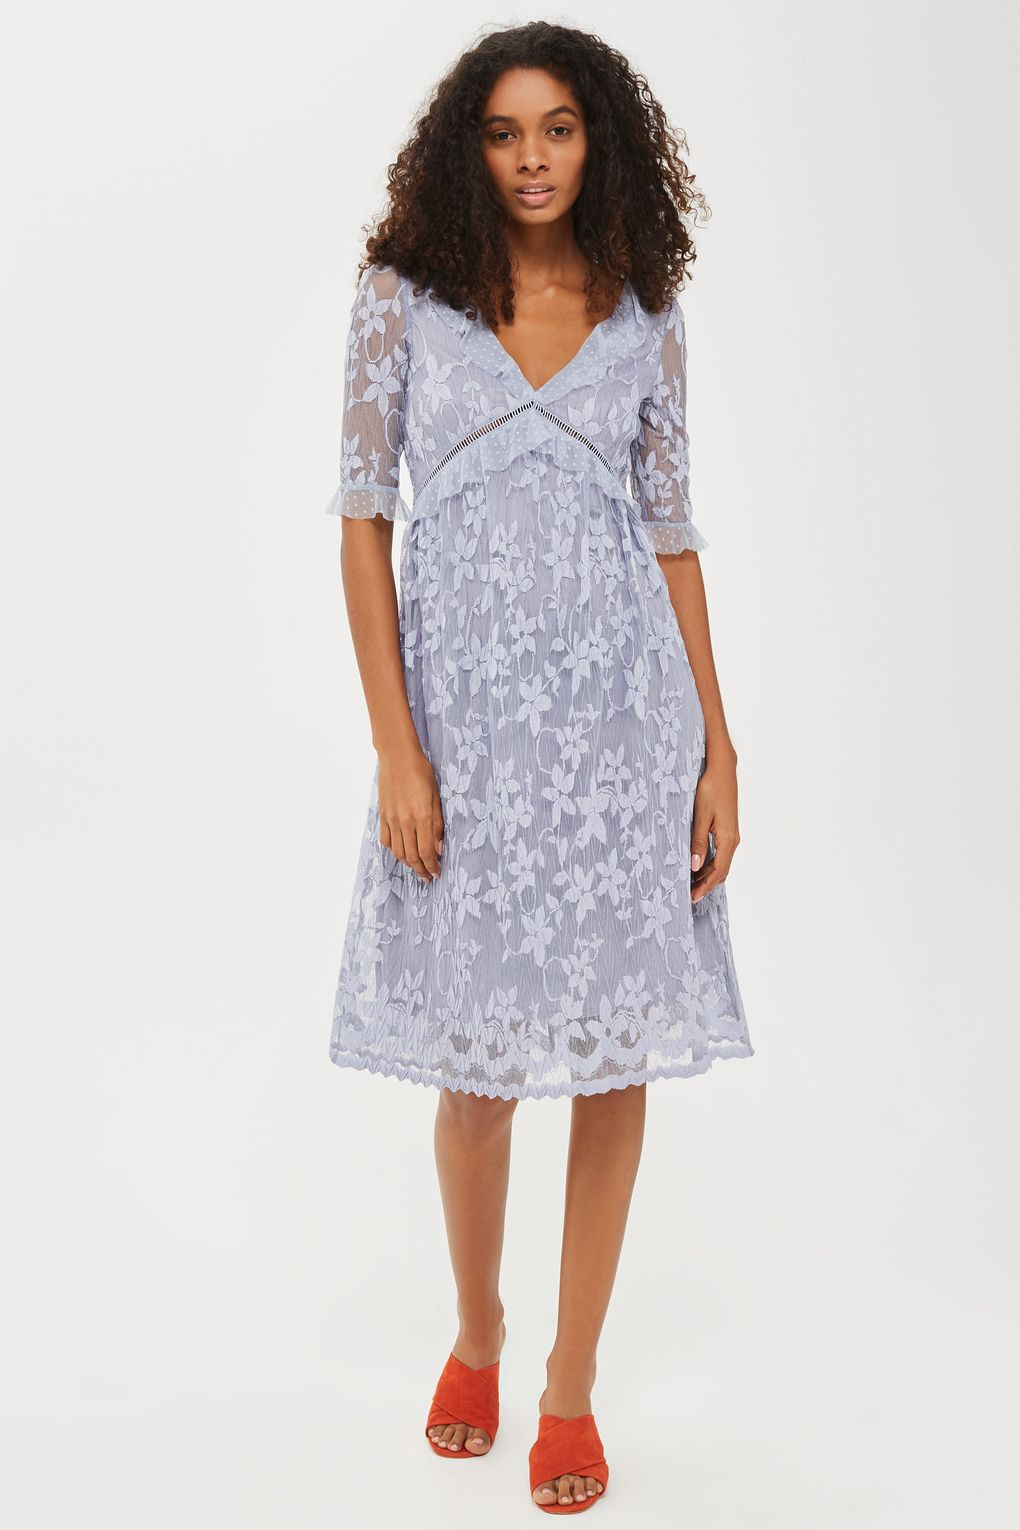 Flute Sleeve Lace Midi Dress  from Top Shop - $80